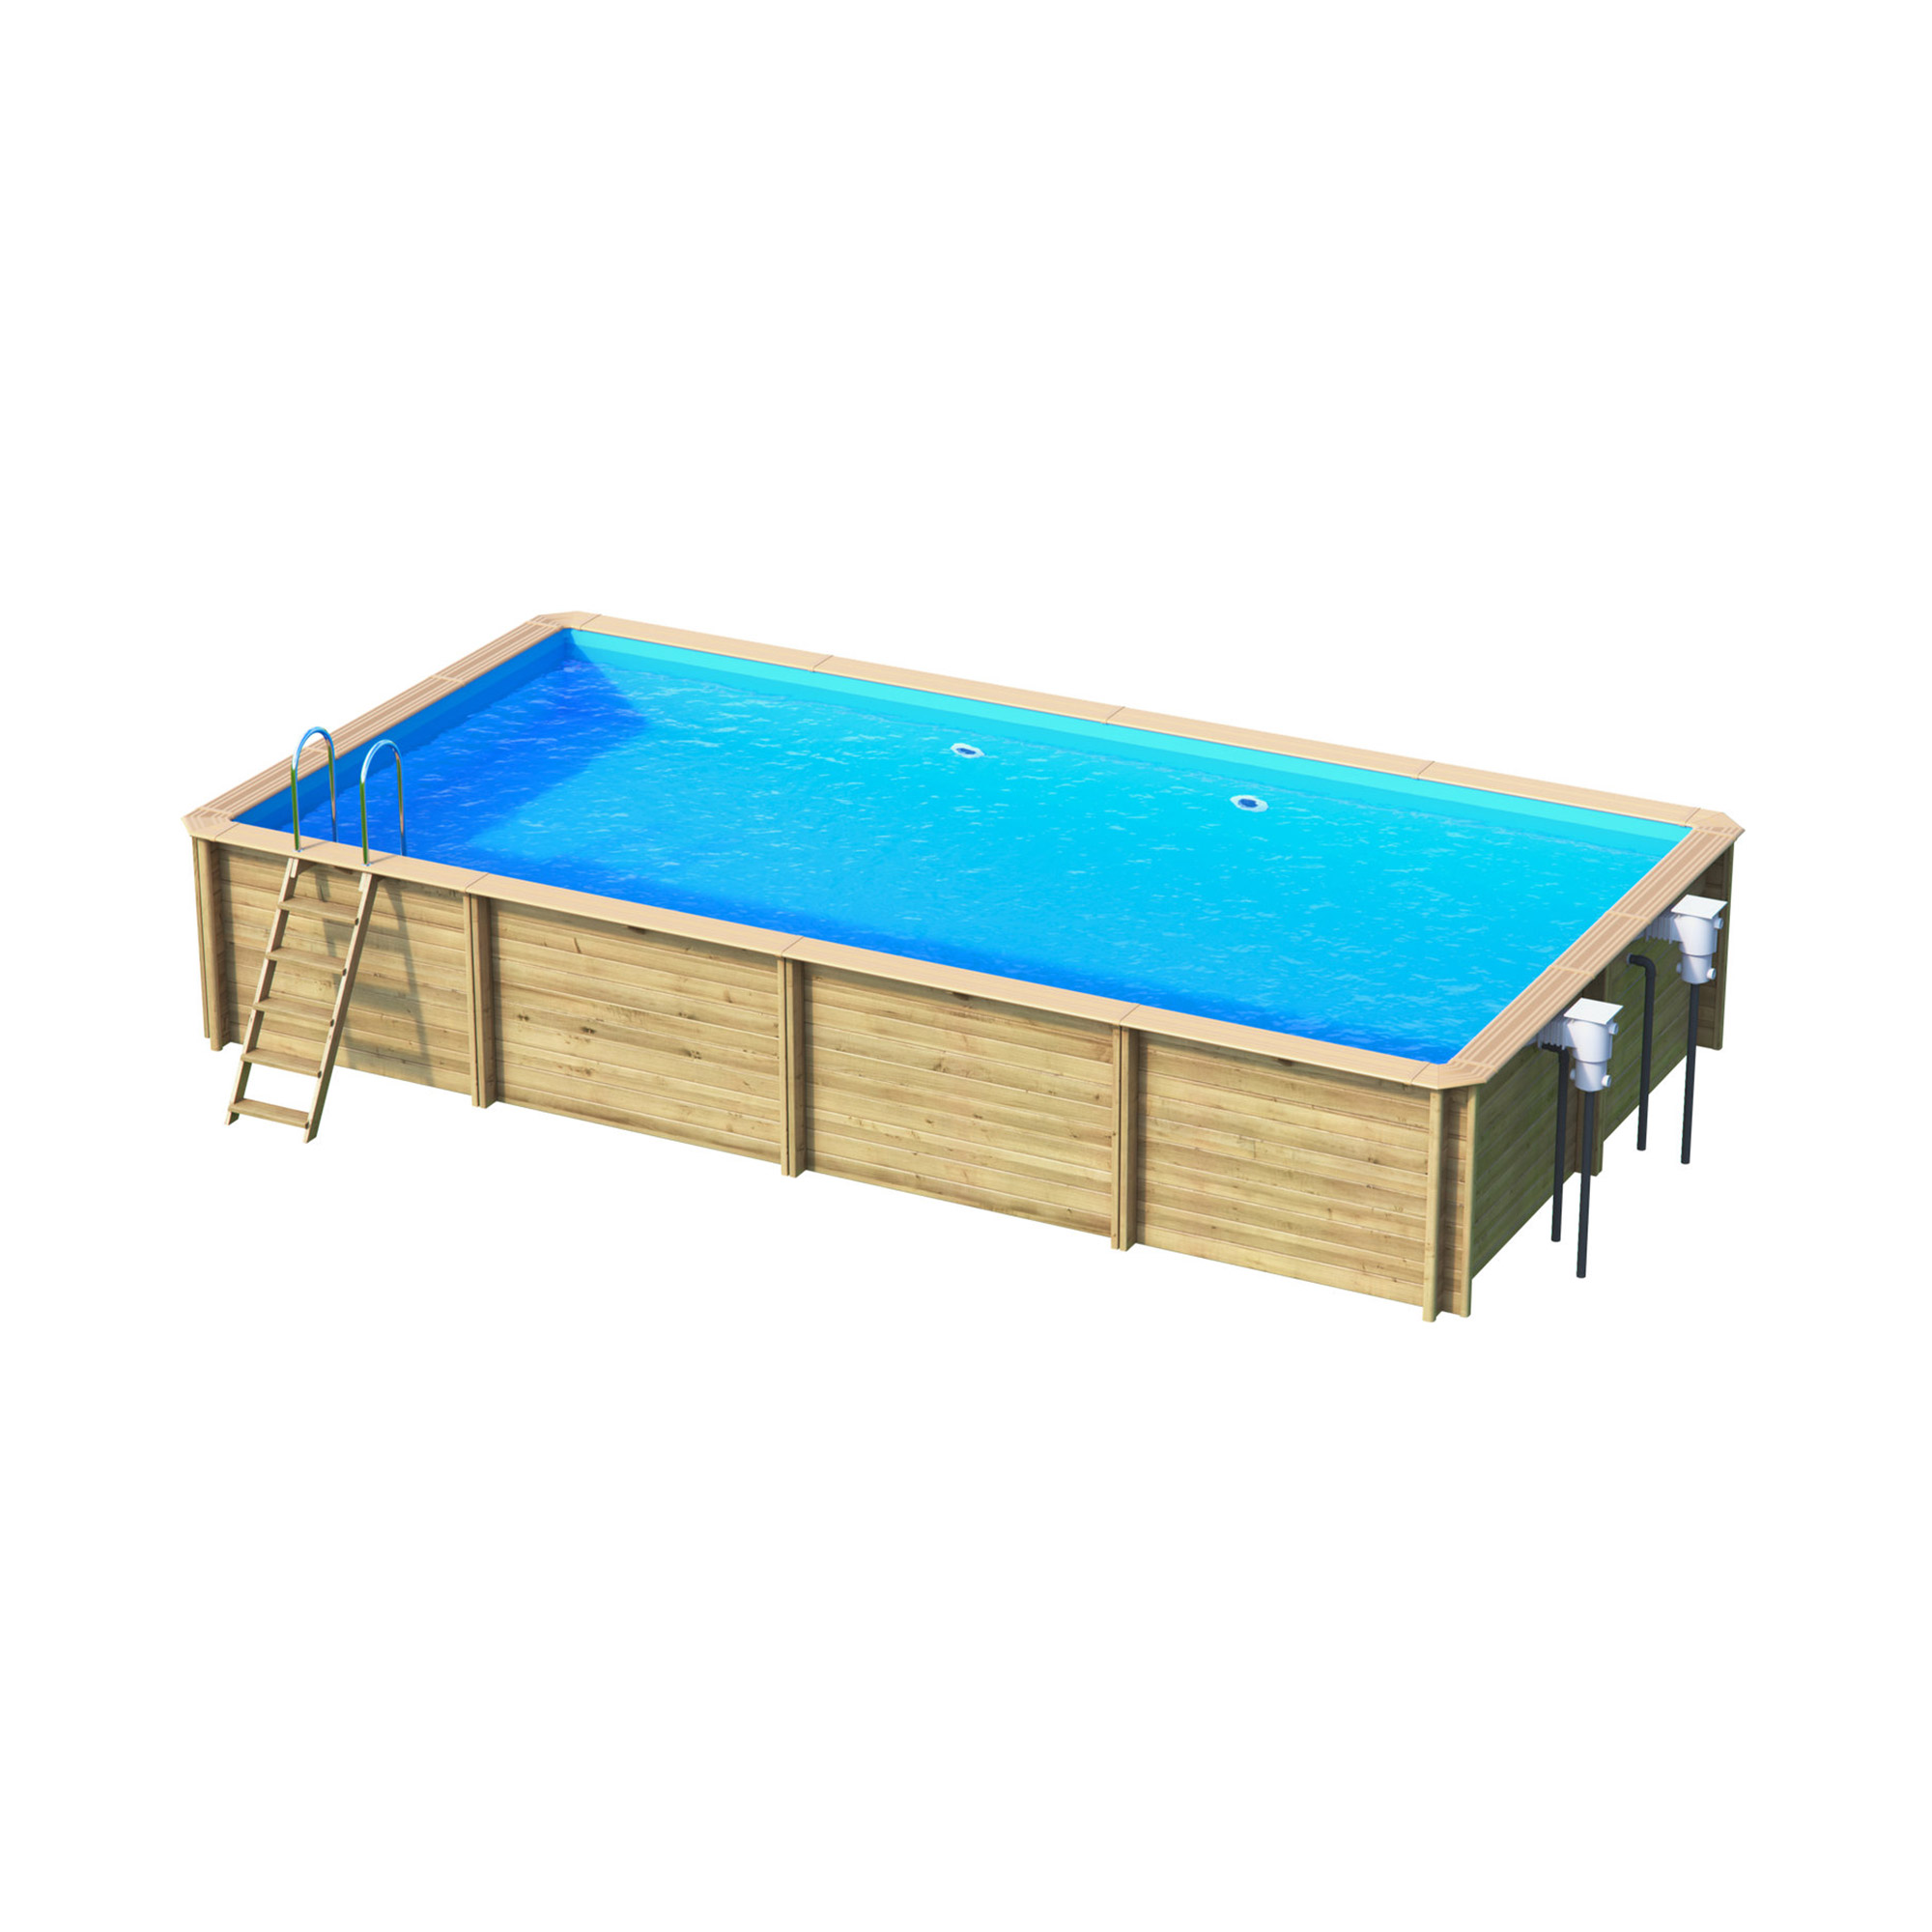 Piscine bois rectangulaire hors sol semi enterr e for Prix piscine 6 x 3